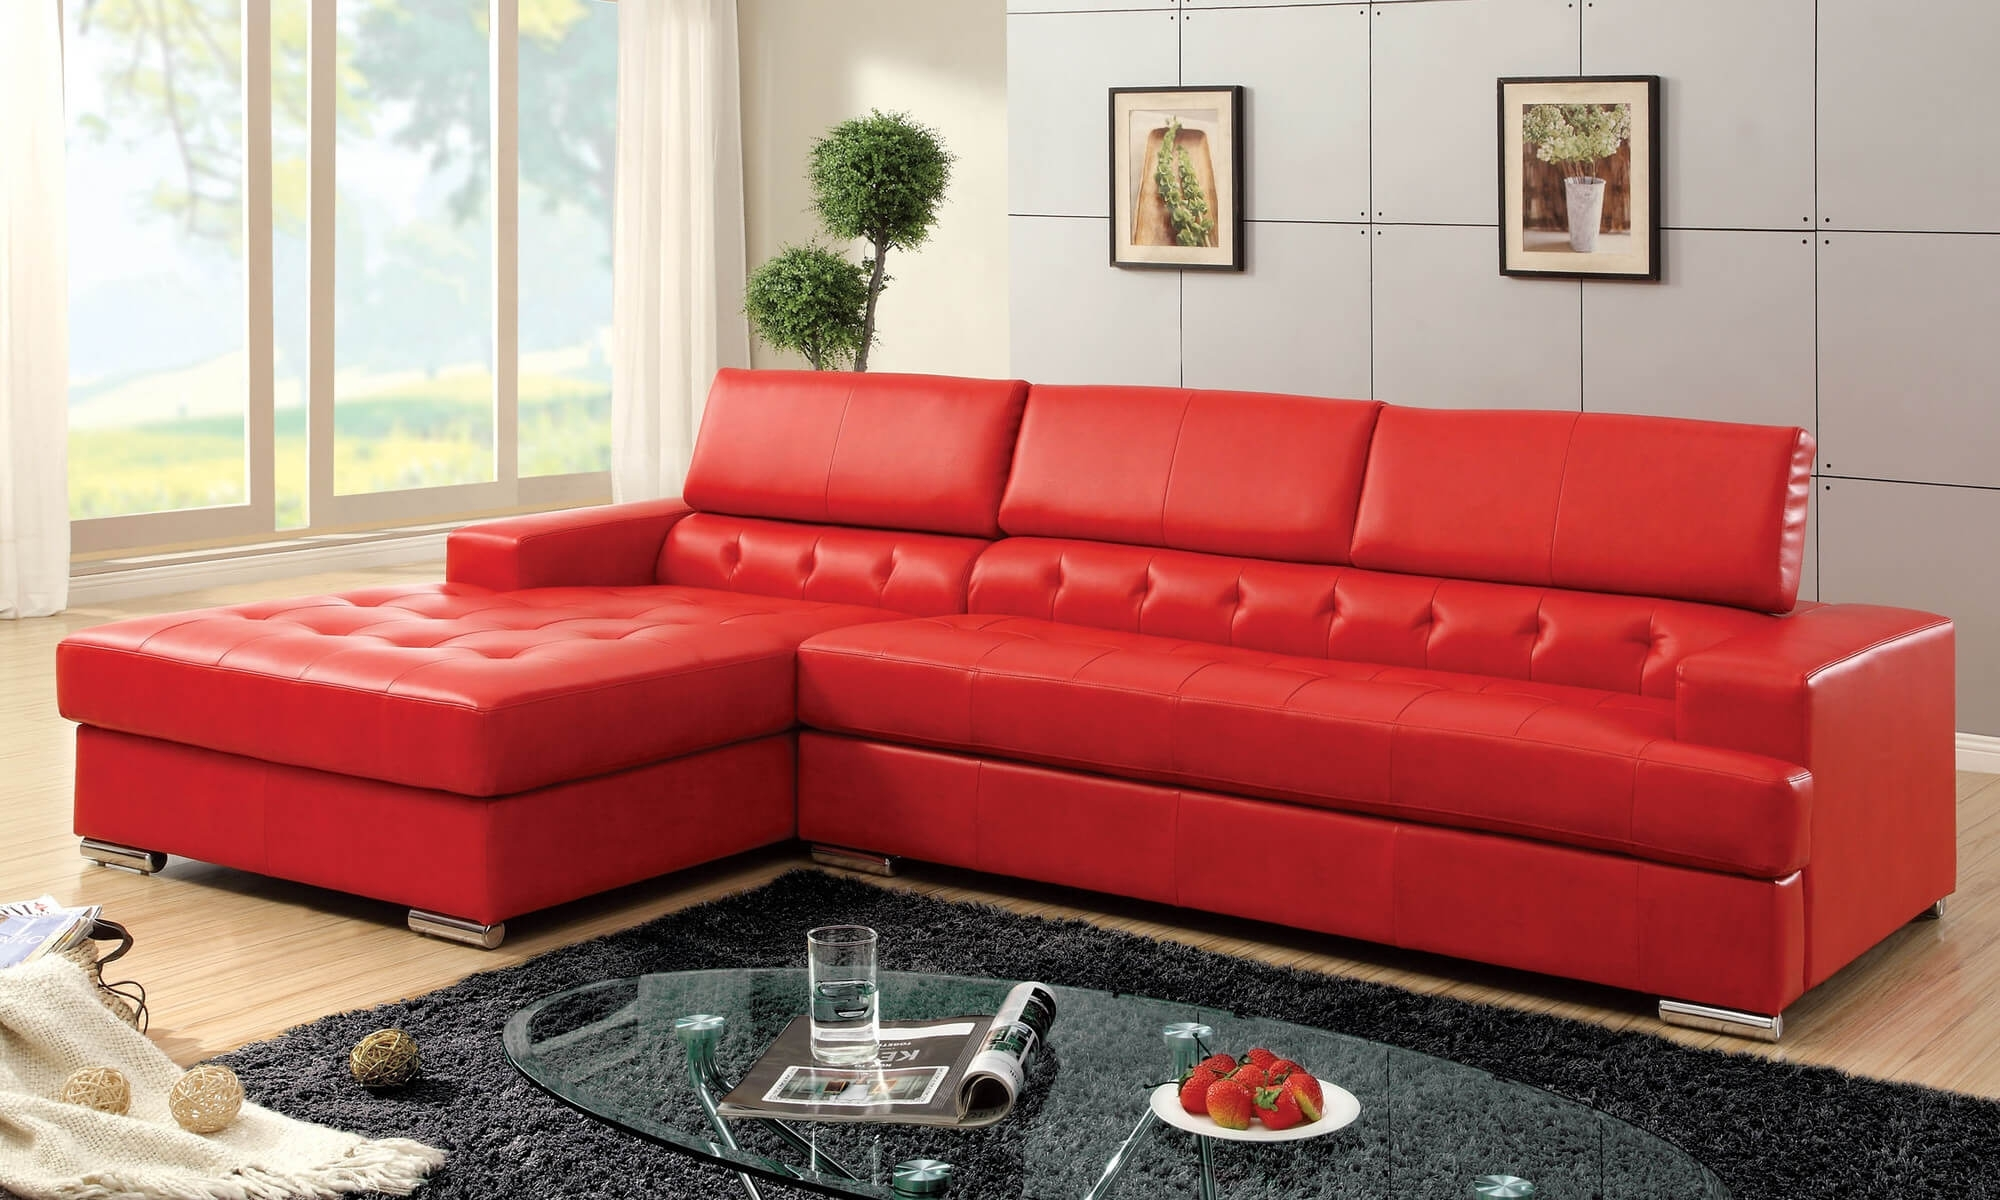 Reliable Red Modern Sofa 18 Stylish Sectional Sofas | Www intended for Kingston Sectional Sofas (Image 7 of 10)